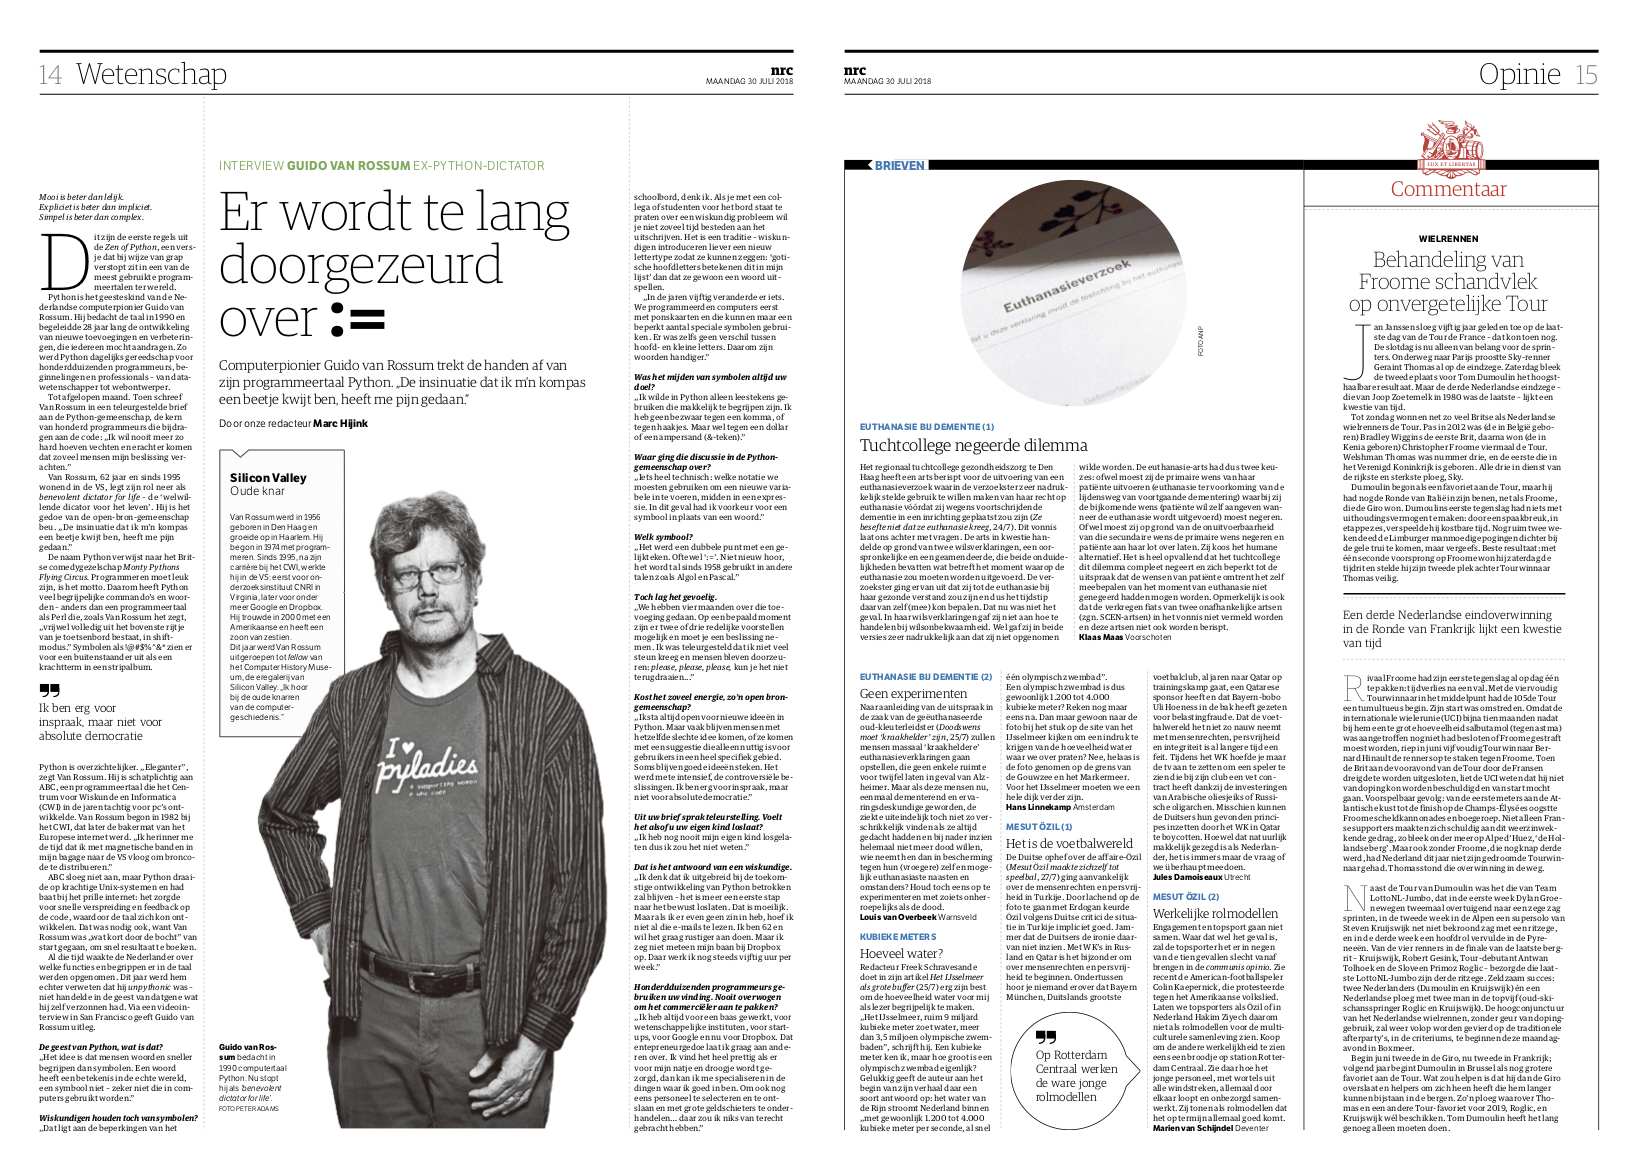 Guido van Rossum profile in NRC Handelsblad, July 30, 2018.